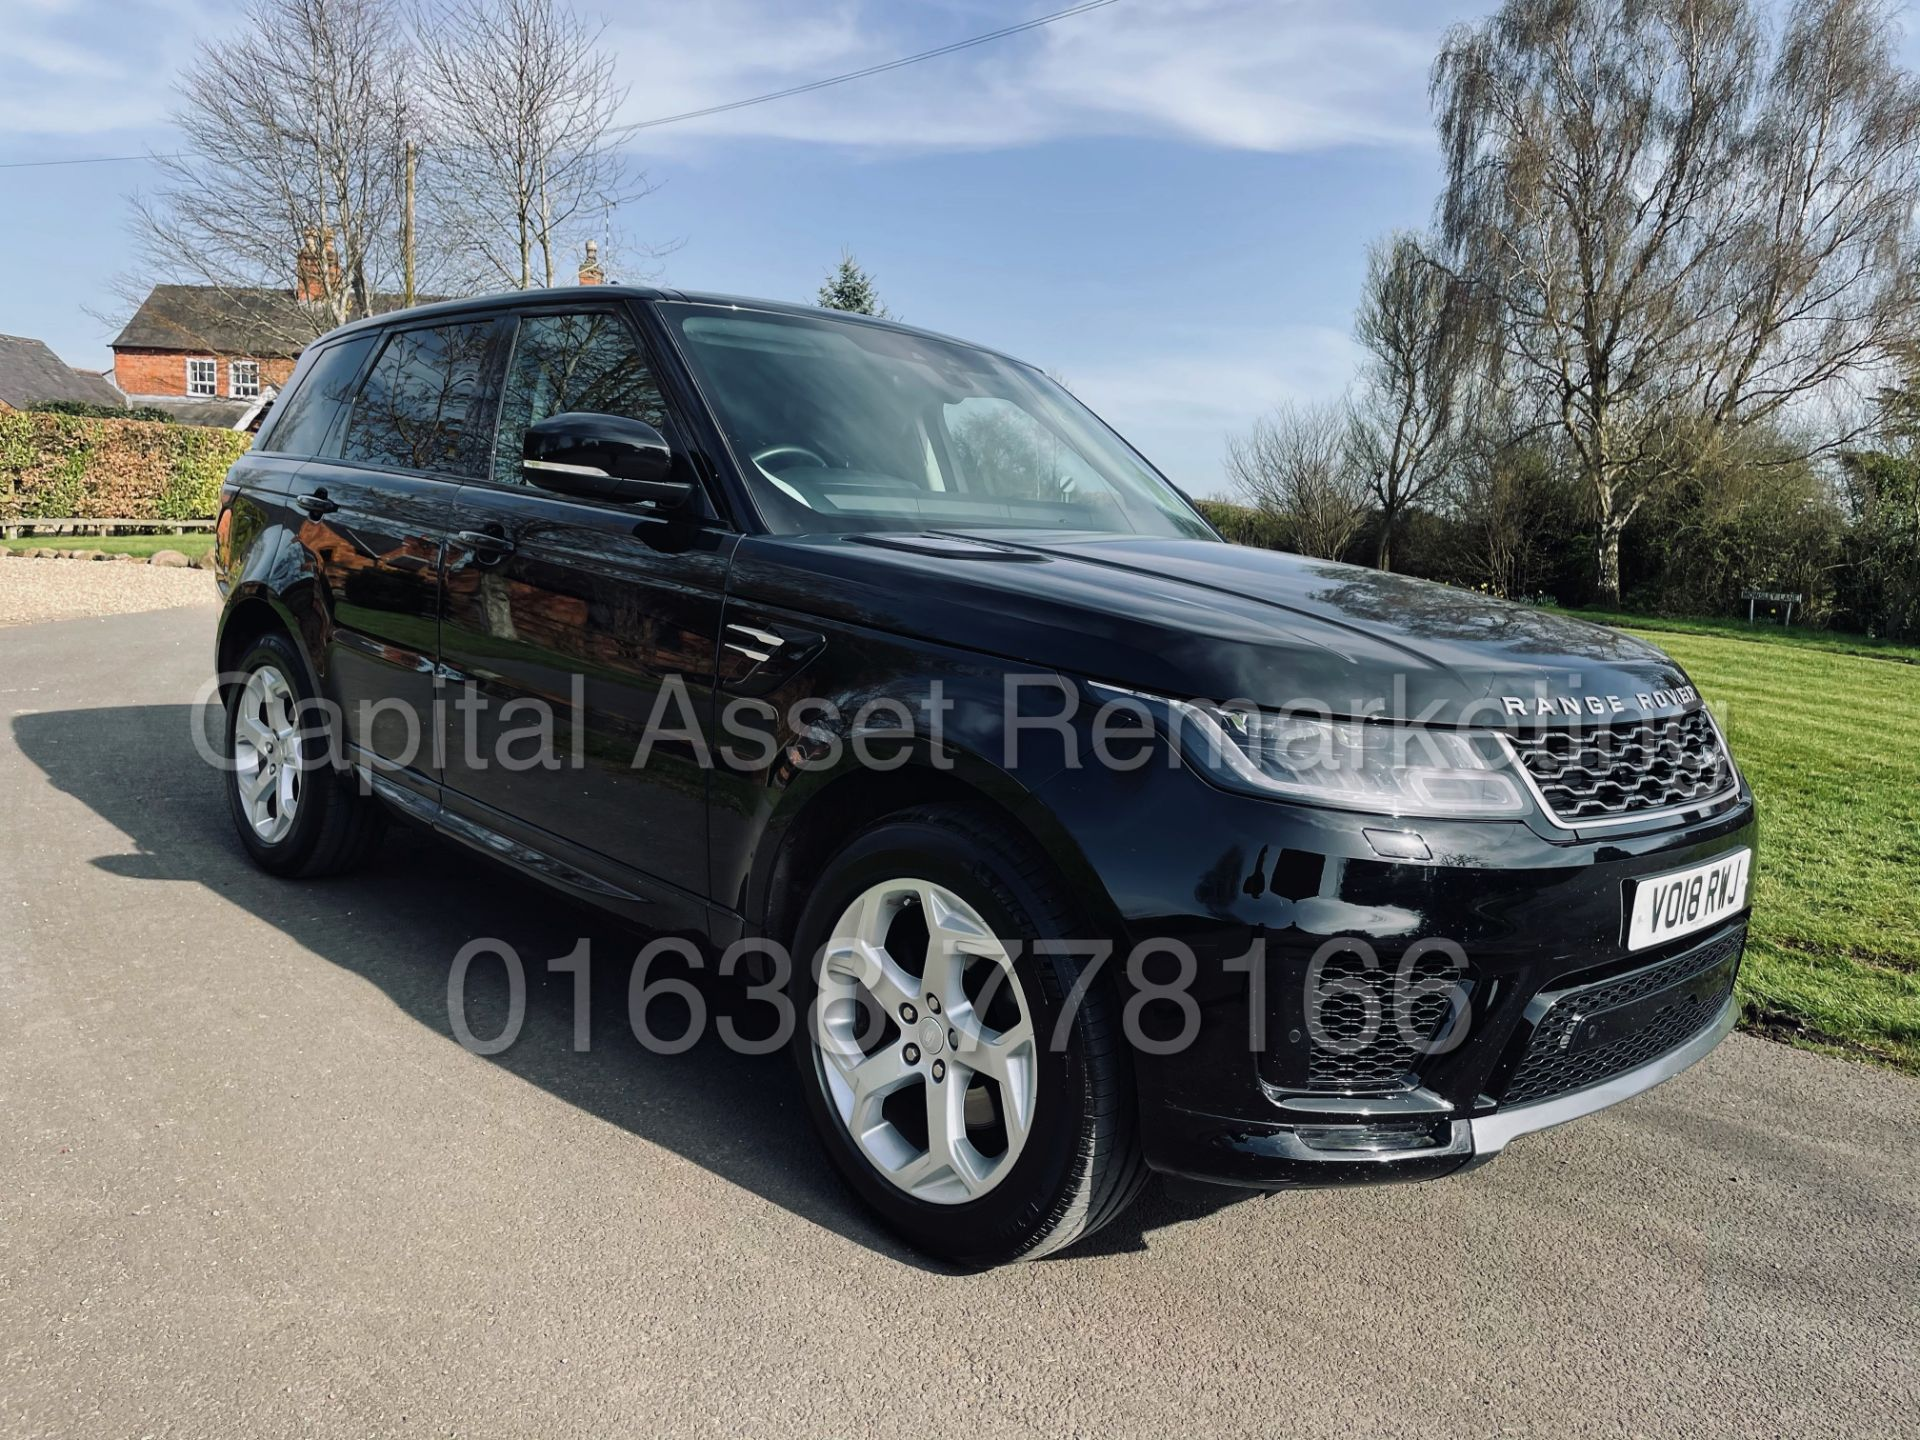 (On Sale) RANGE ROVER SPORT *HSE EDITION* SUV (2018 - NEW MODEL) '8 SPEED AUTO' *FULLY LOADED* - Image 3 of 55